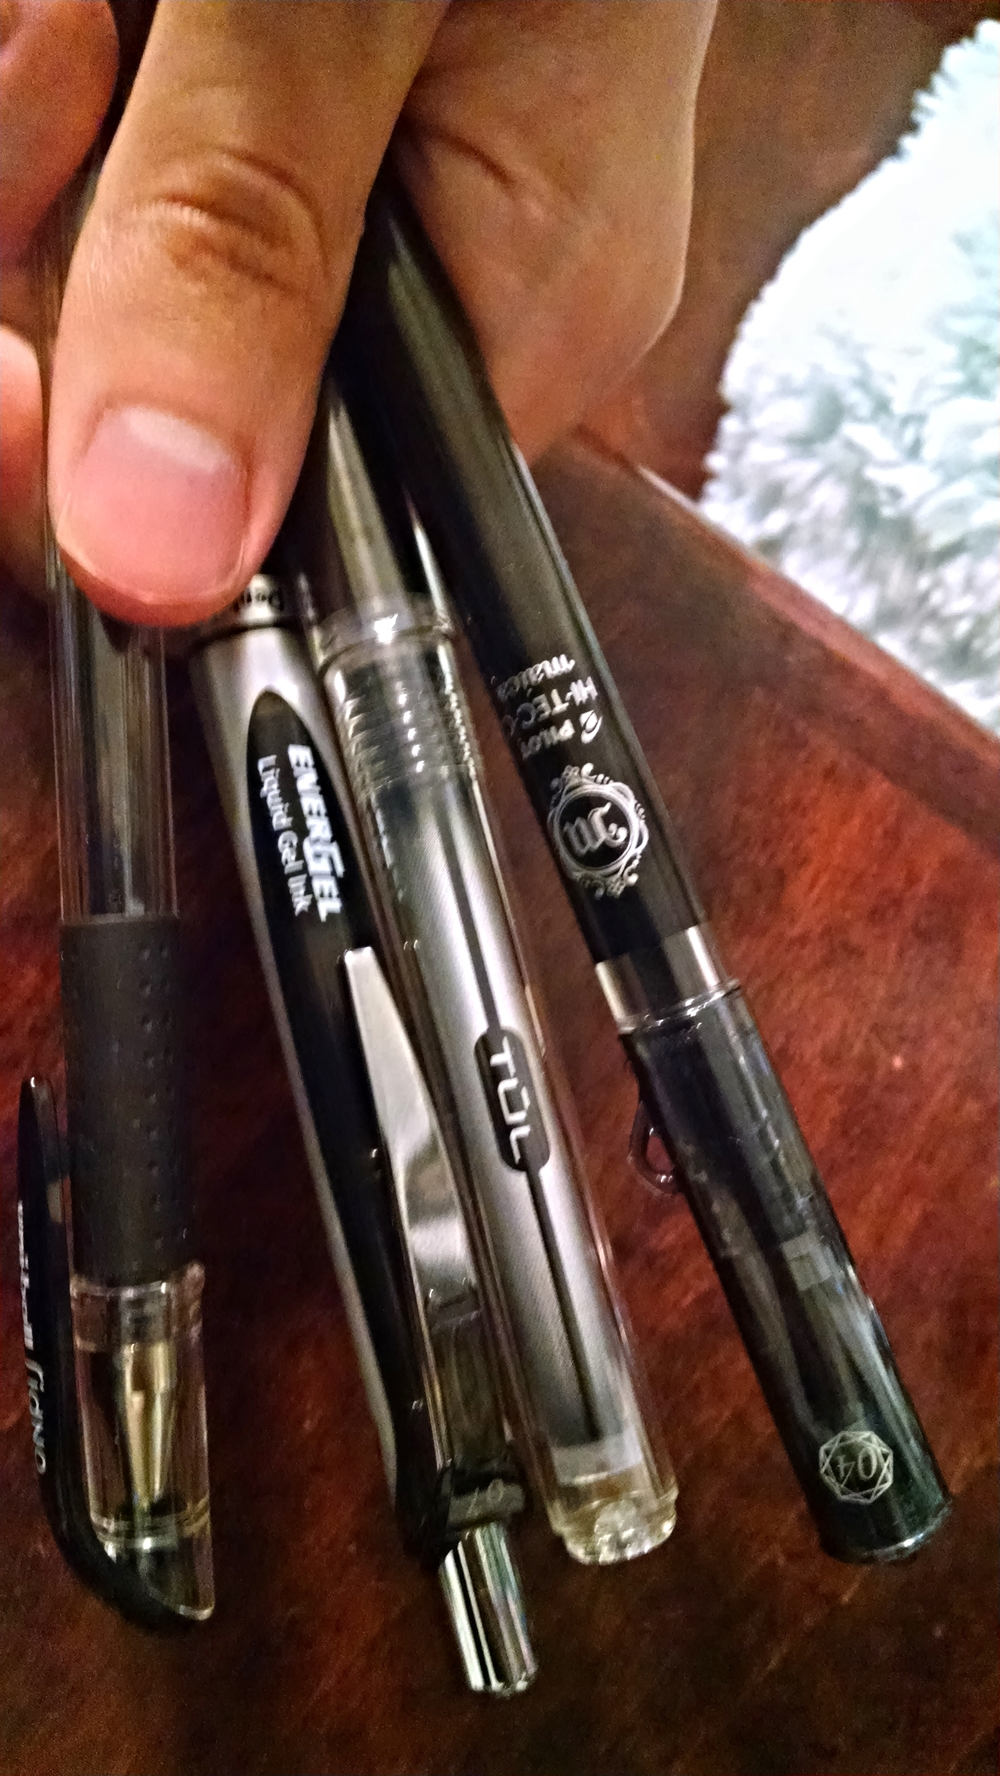 Left to right: Uniball Signo DX, Pentel Energel, TUL, Pilot Hi-Tec-C